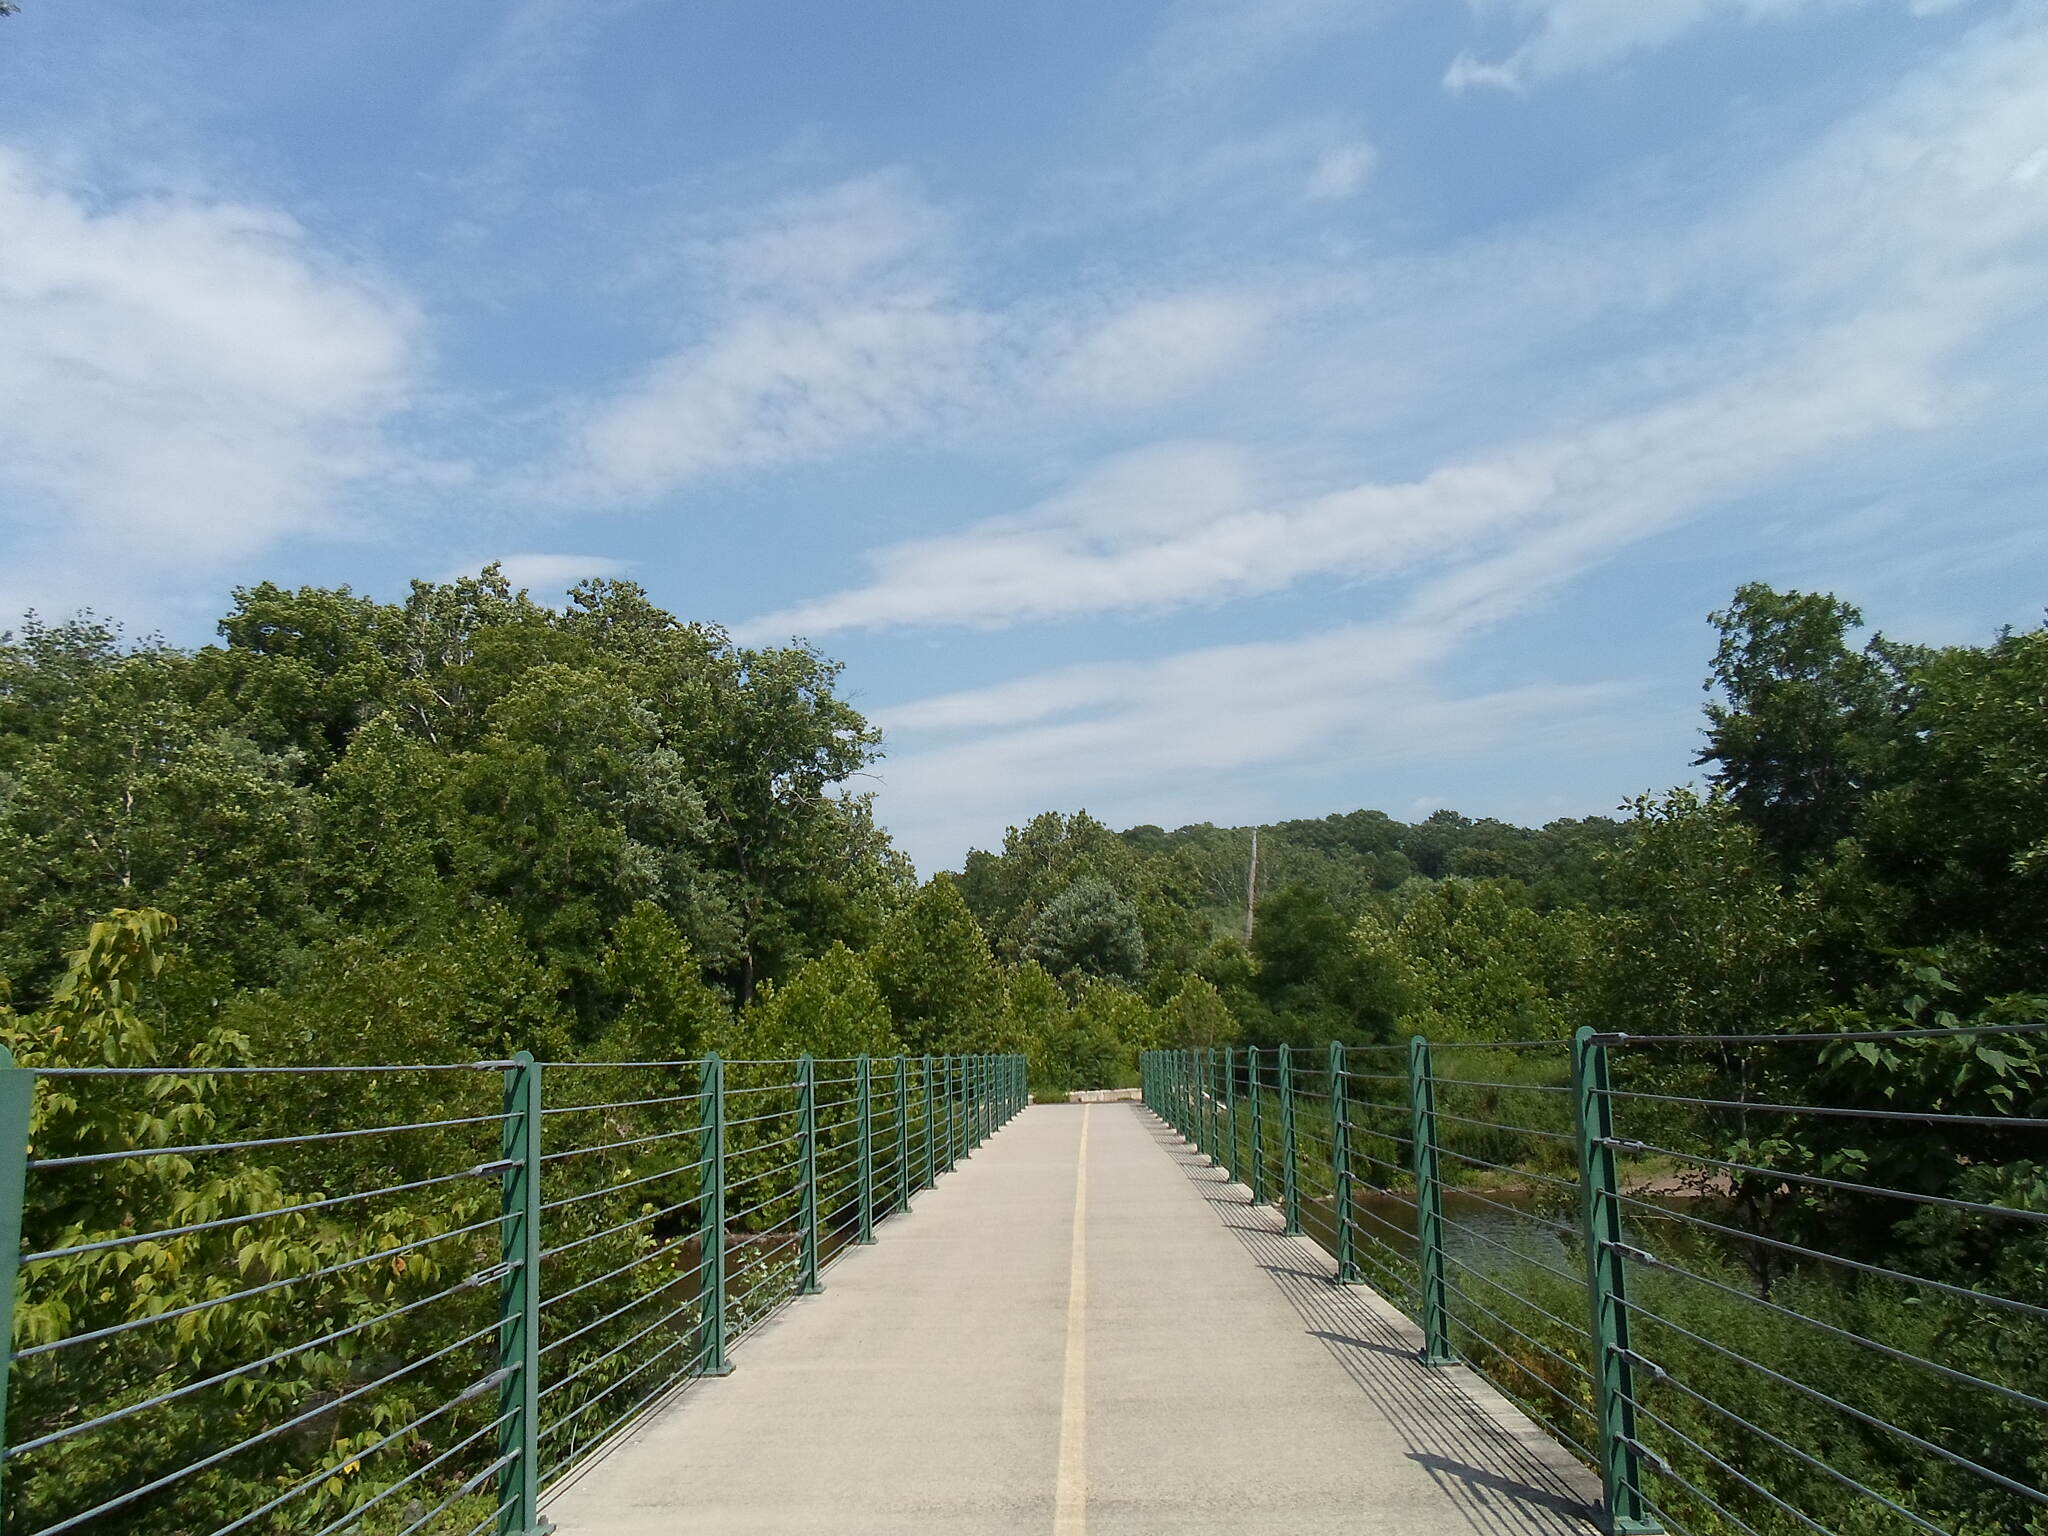 Perkiomen Trail Perkiomen Trail Trail bridge between Central Perkiomen Valley Park and Graterford. Taken July 2016.